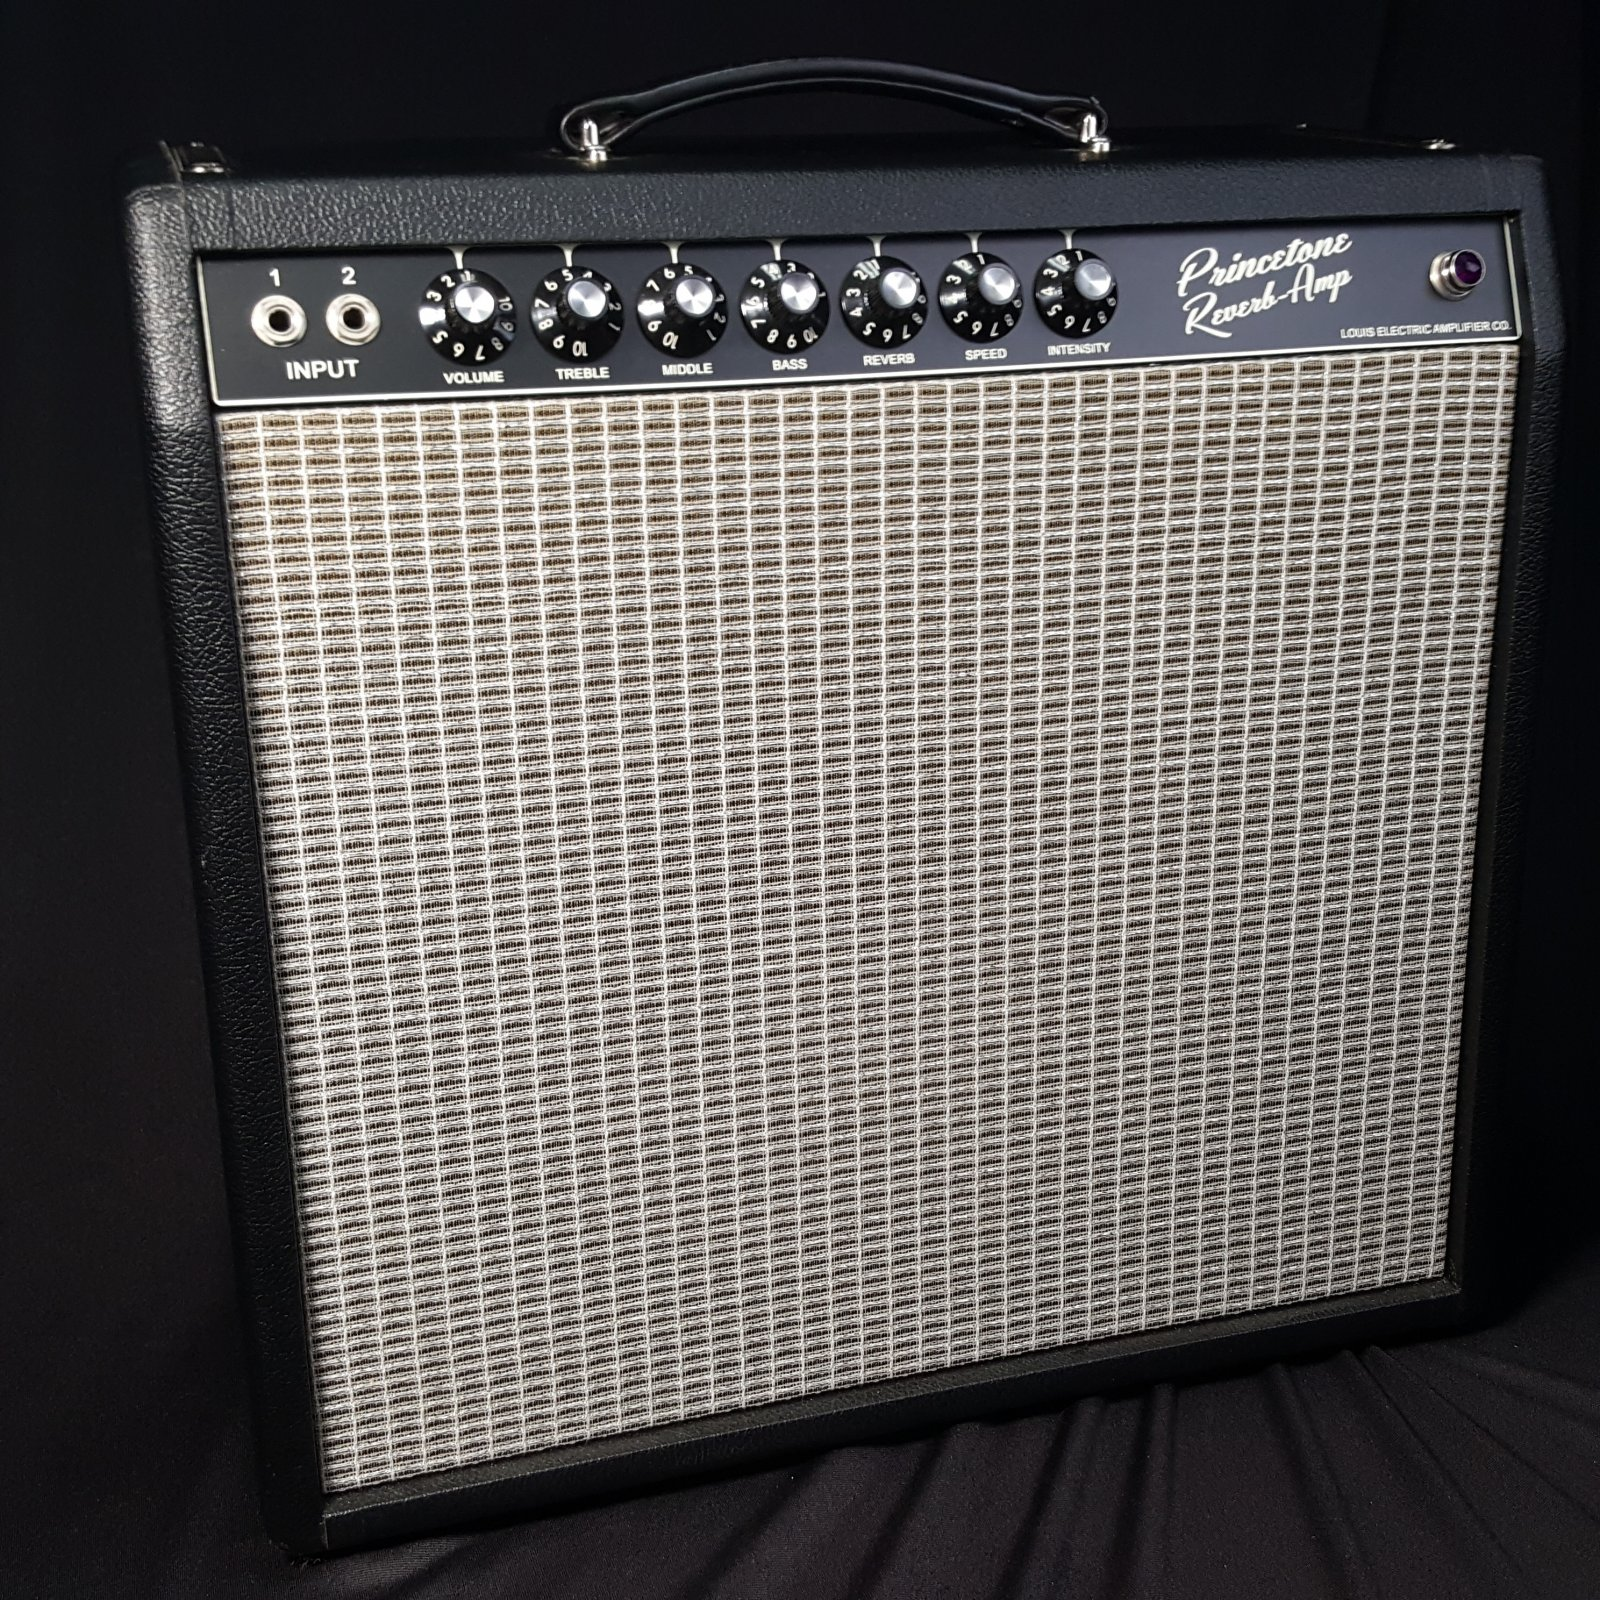 USED Louis Electric 6L6 Princetone Reverb Guitar Amplifier with Cover